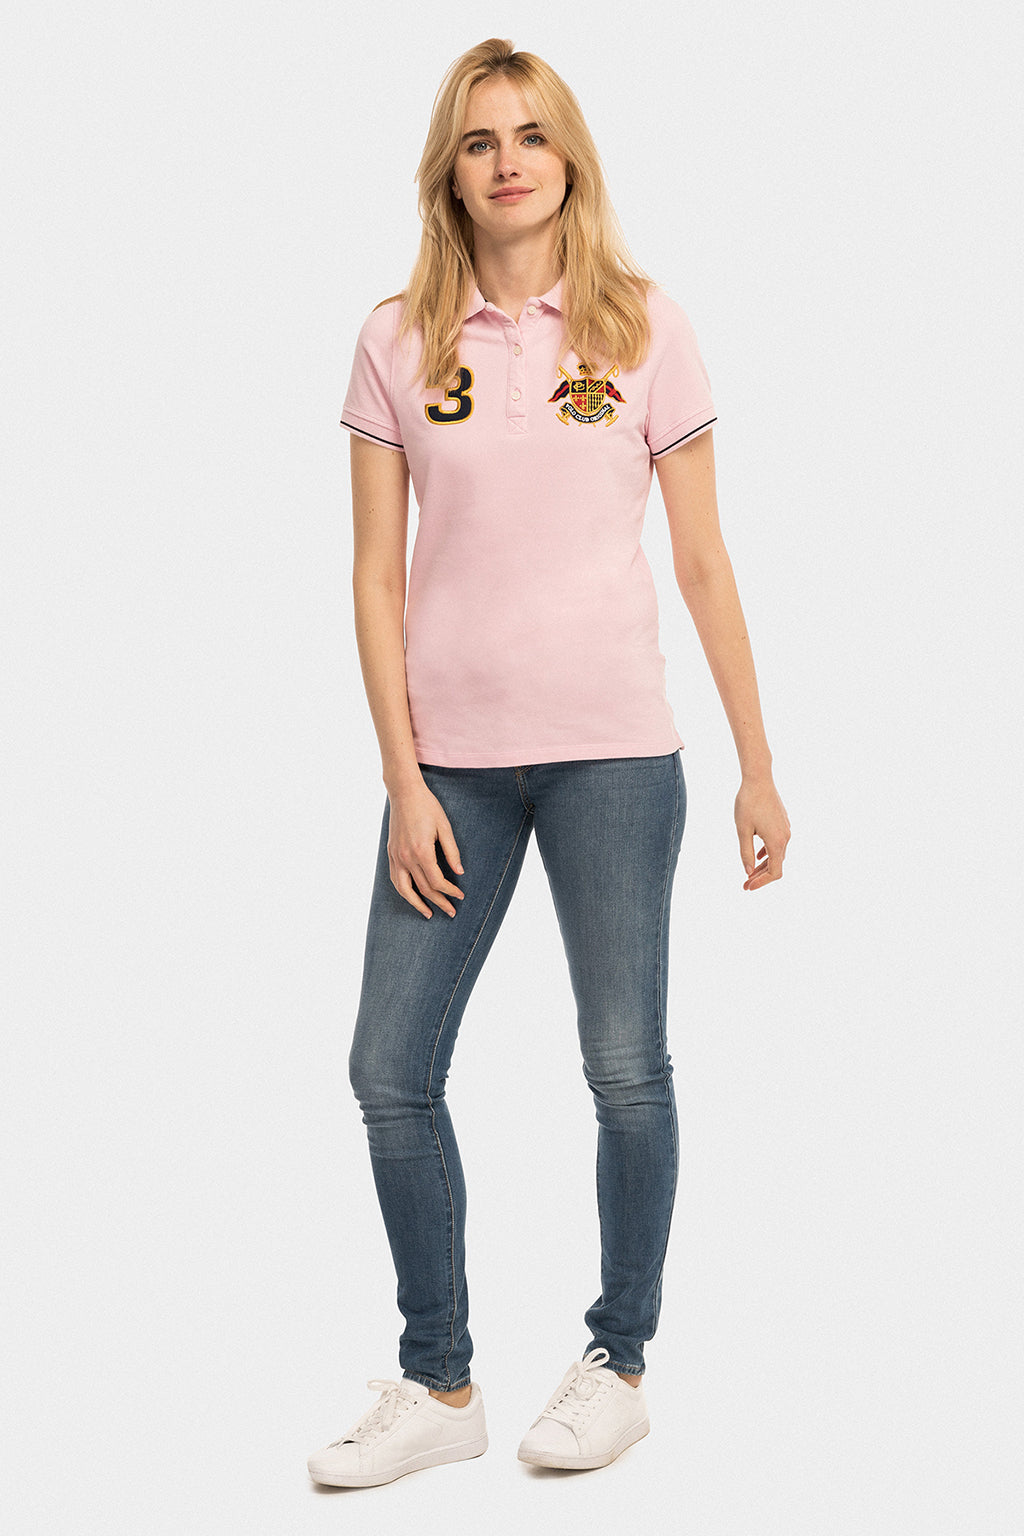 Nautical-inspired pink polo shirt